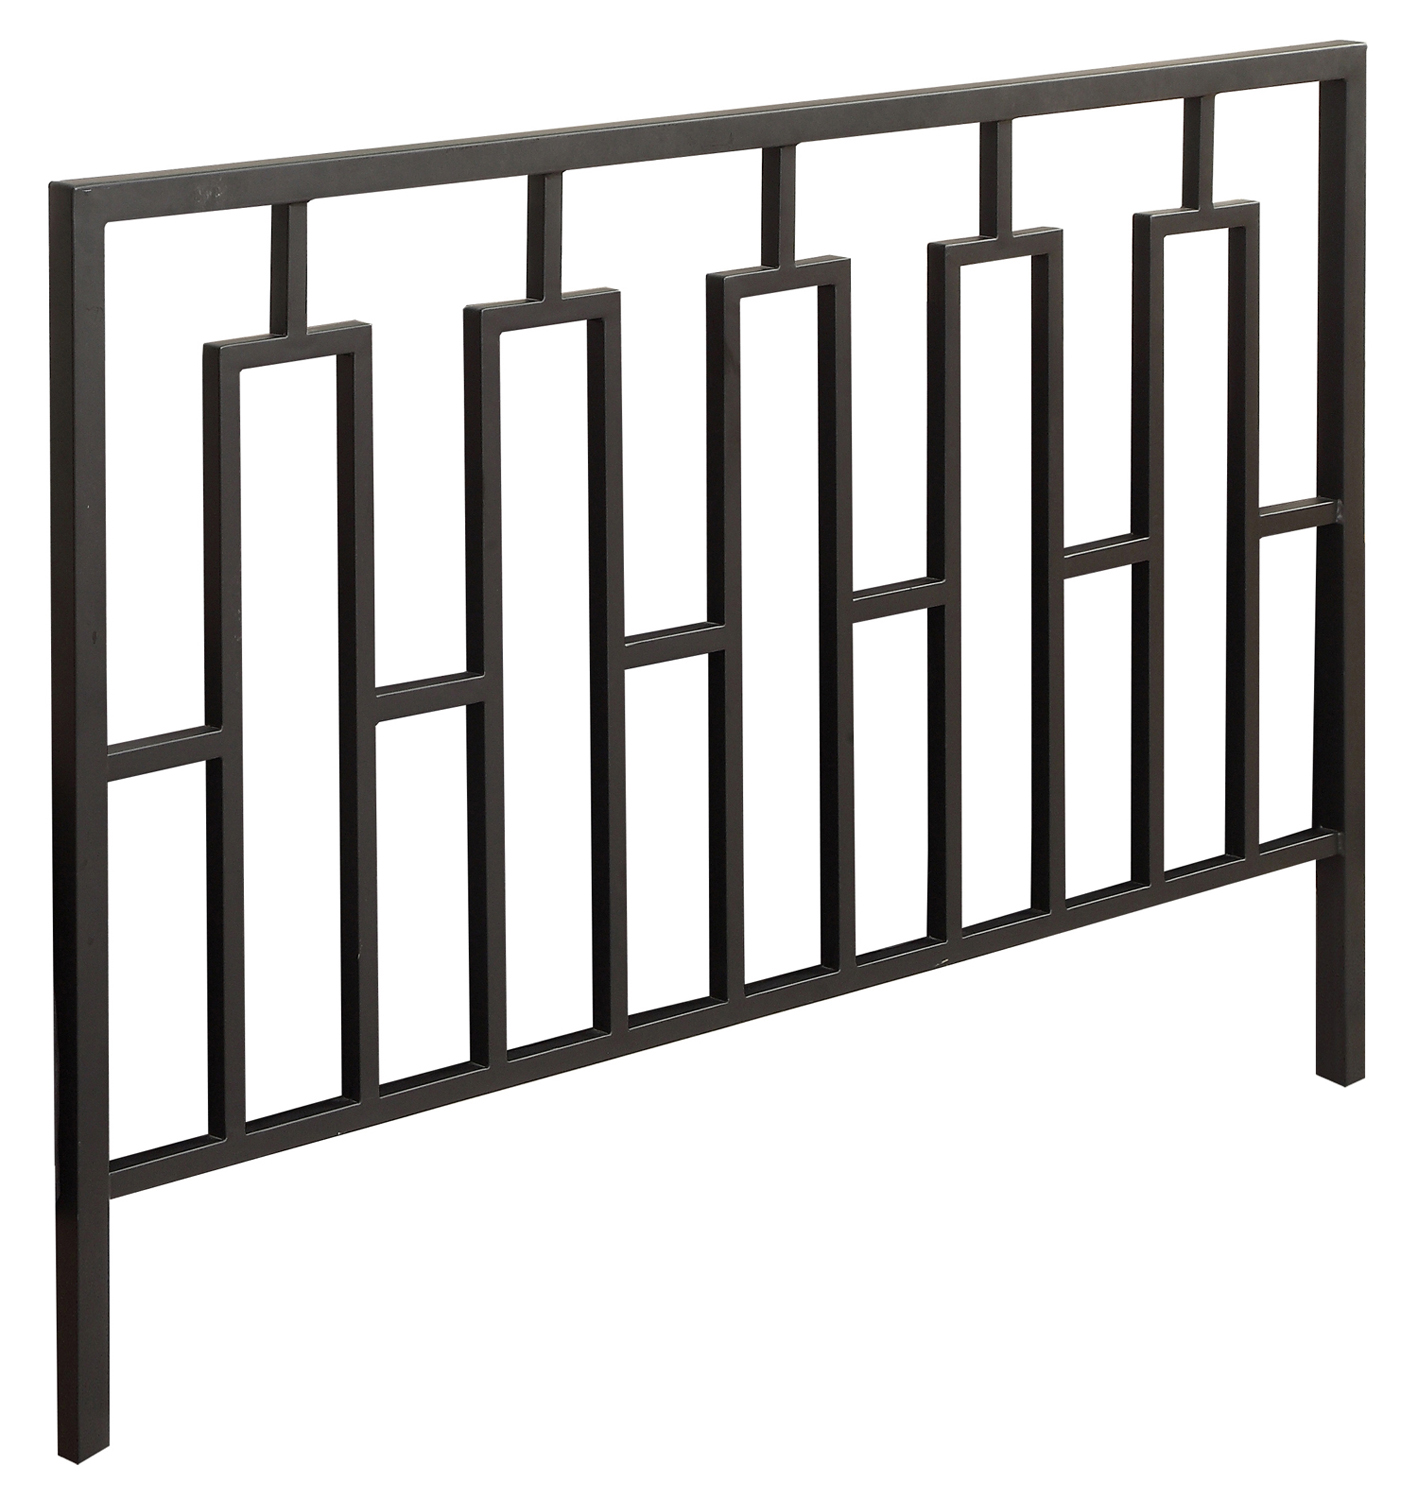 Queen Or Full Size Bed Headboard or Footboard, Black